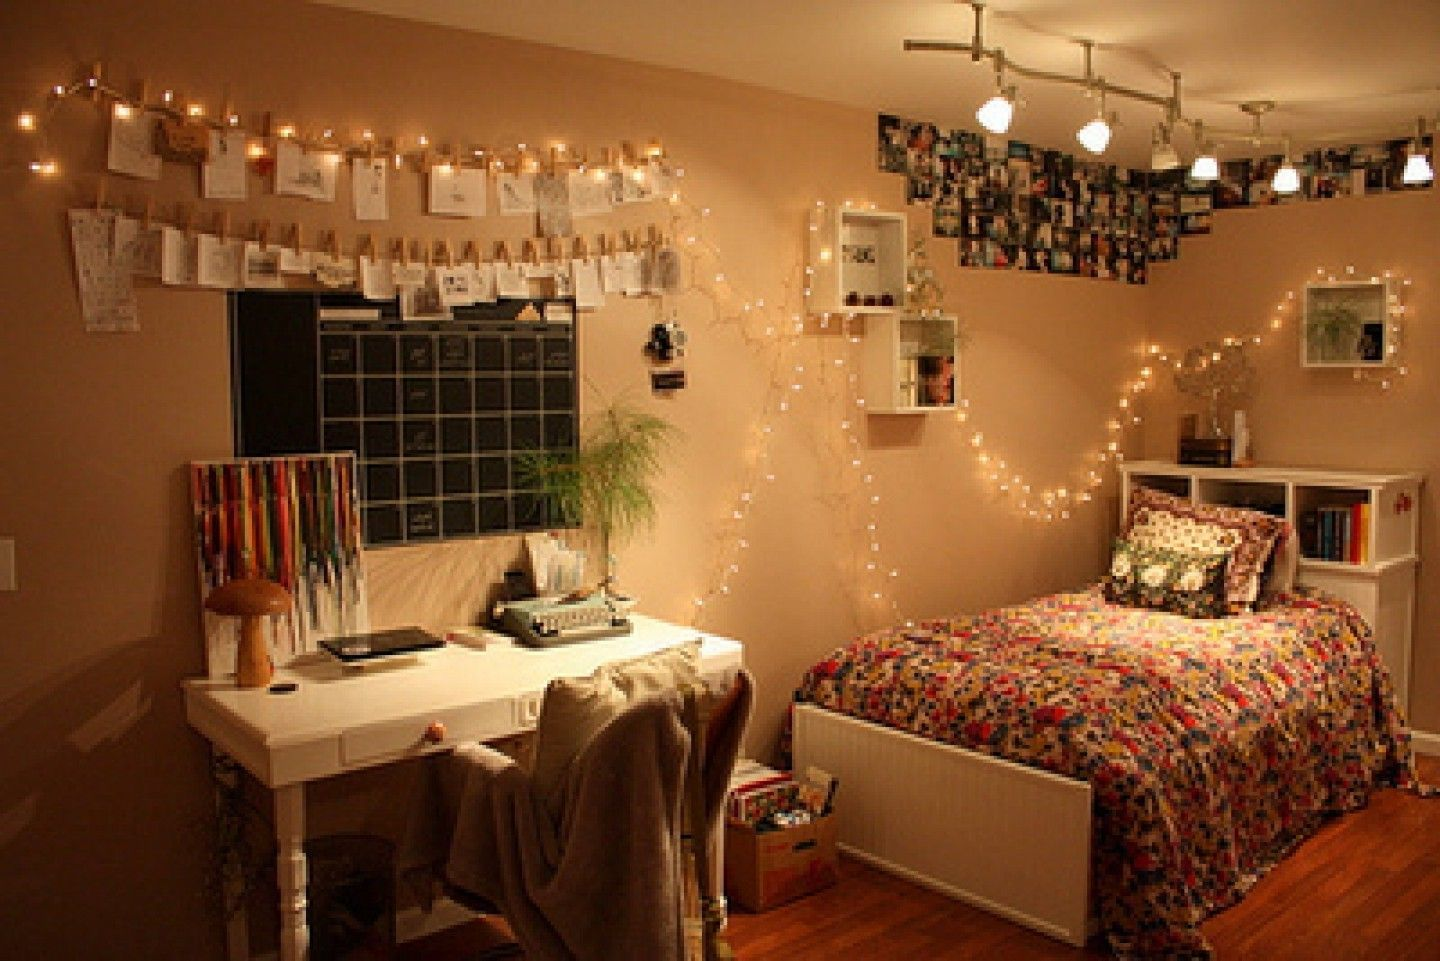 Bedroom Hipster Decorating Ideas Hanging String Led Lights Decorative Flower Blossom Bed Cover Ceiling Lamp Decoration Thumblr For Teen